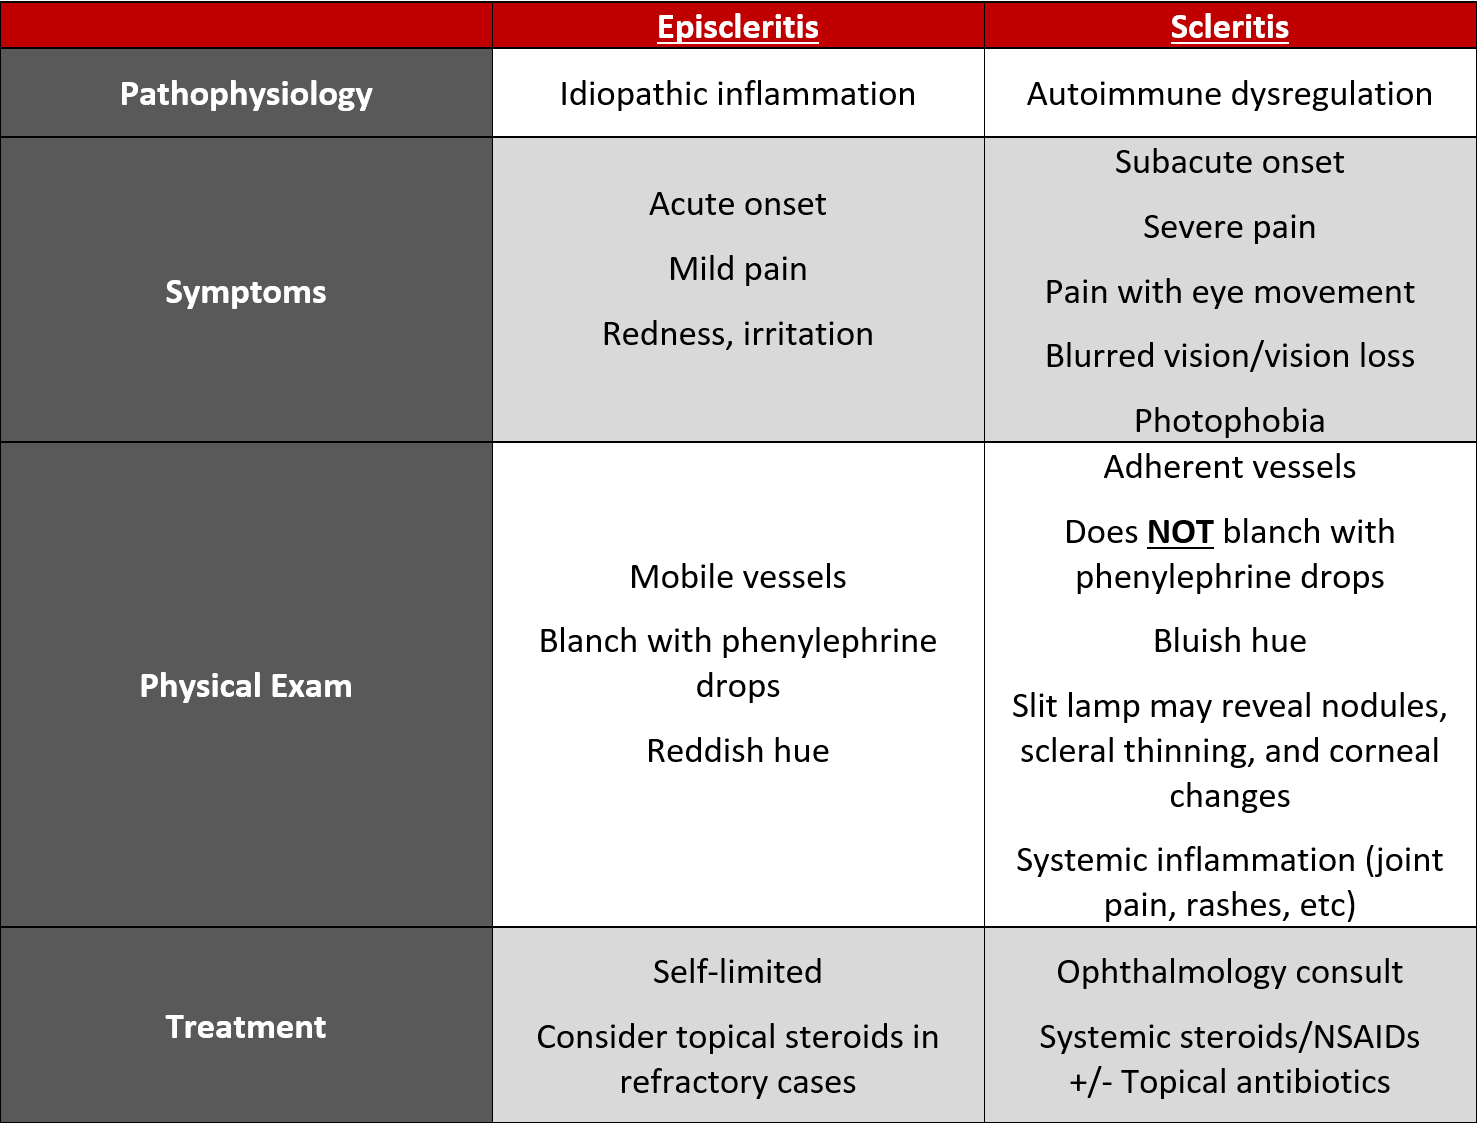 Table 1. Scleritis vs Episcleritis